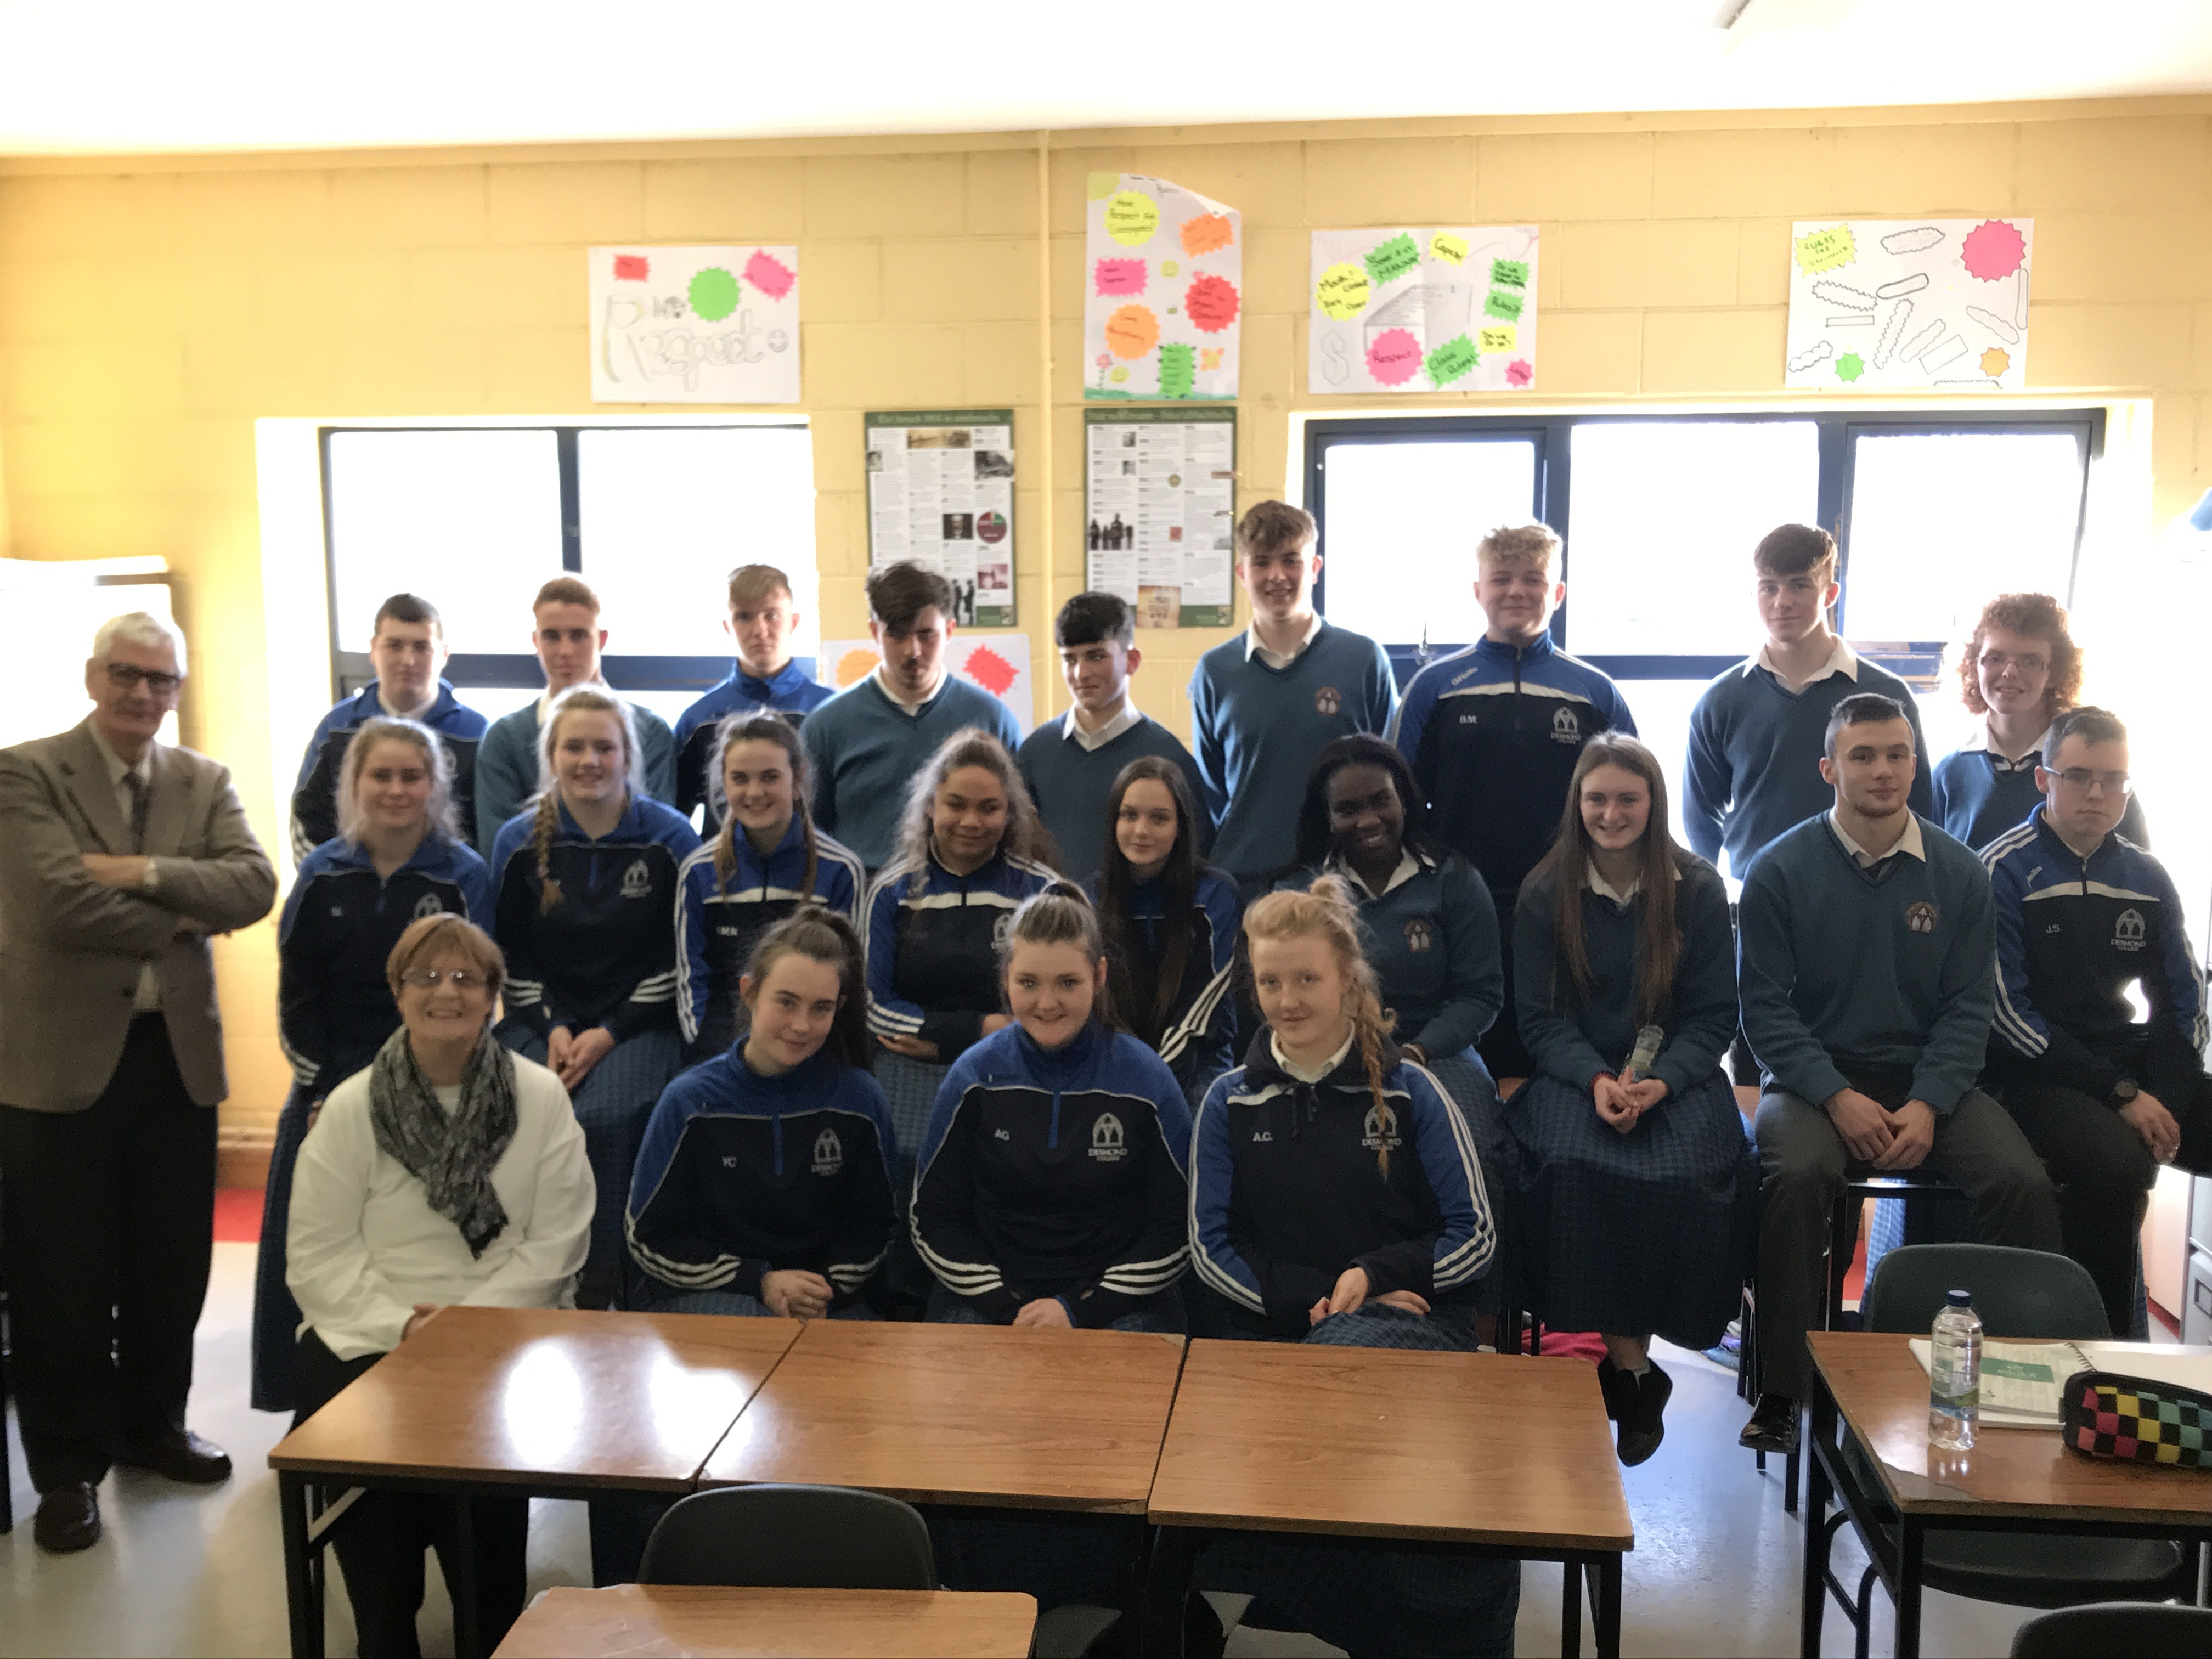 Dec 2017: Denis and Noleen Sexton giving a talk to the Transition Year Students about the work being done by the Irish Society for Autism